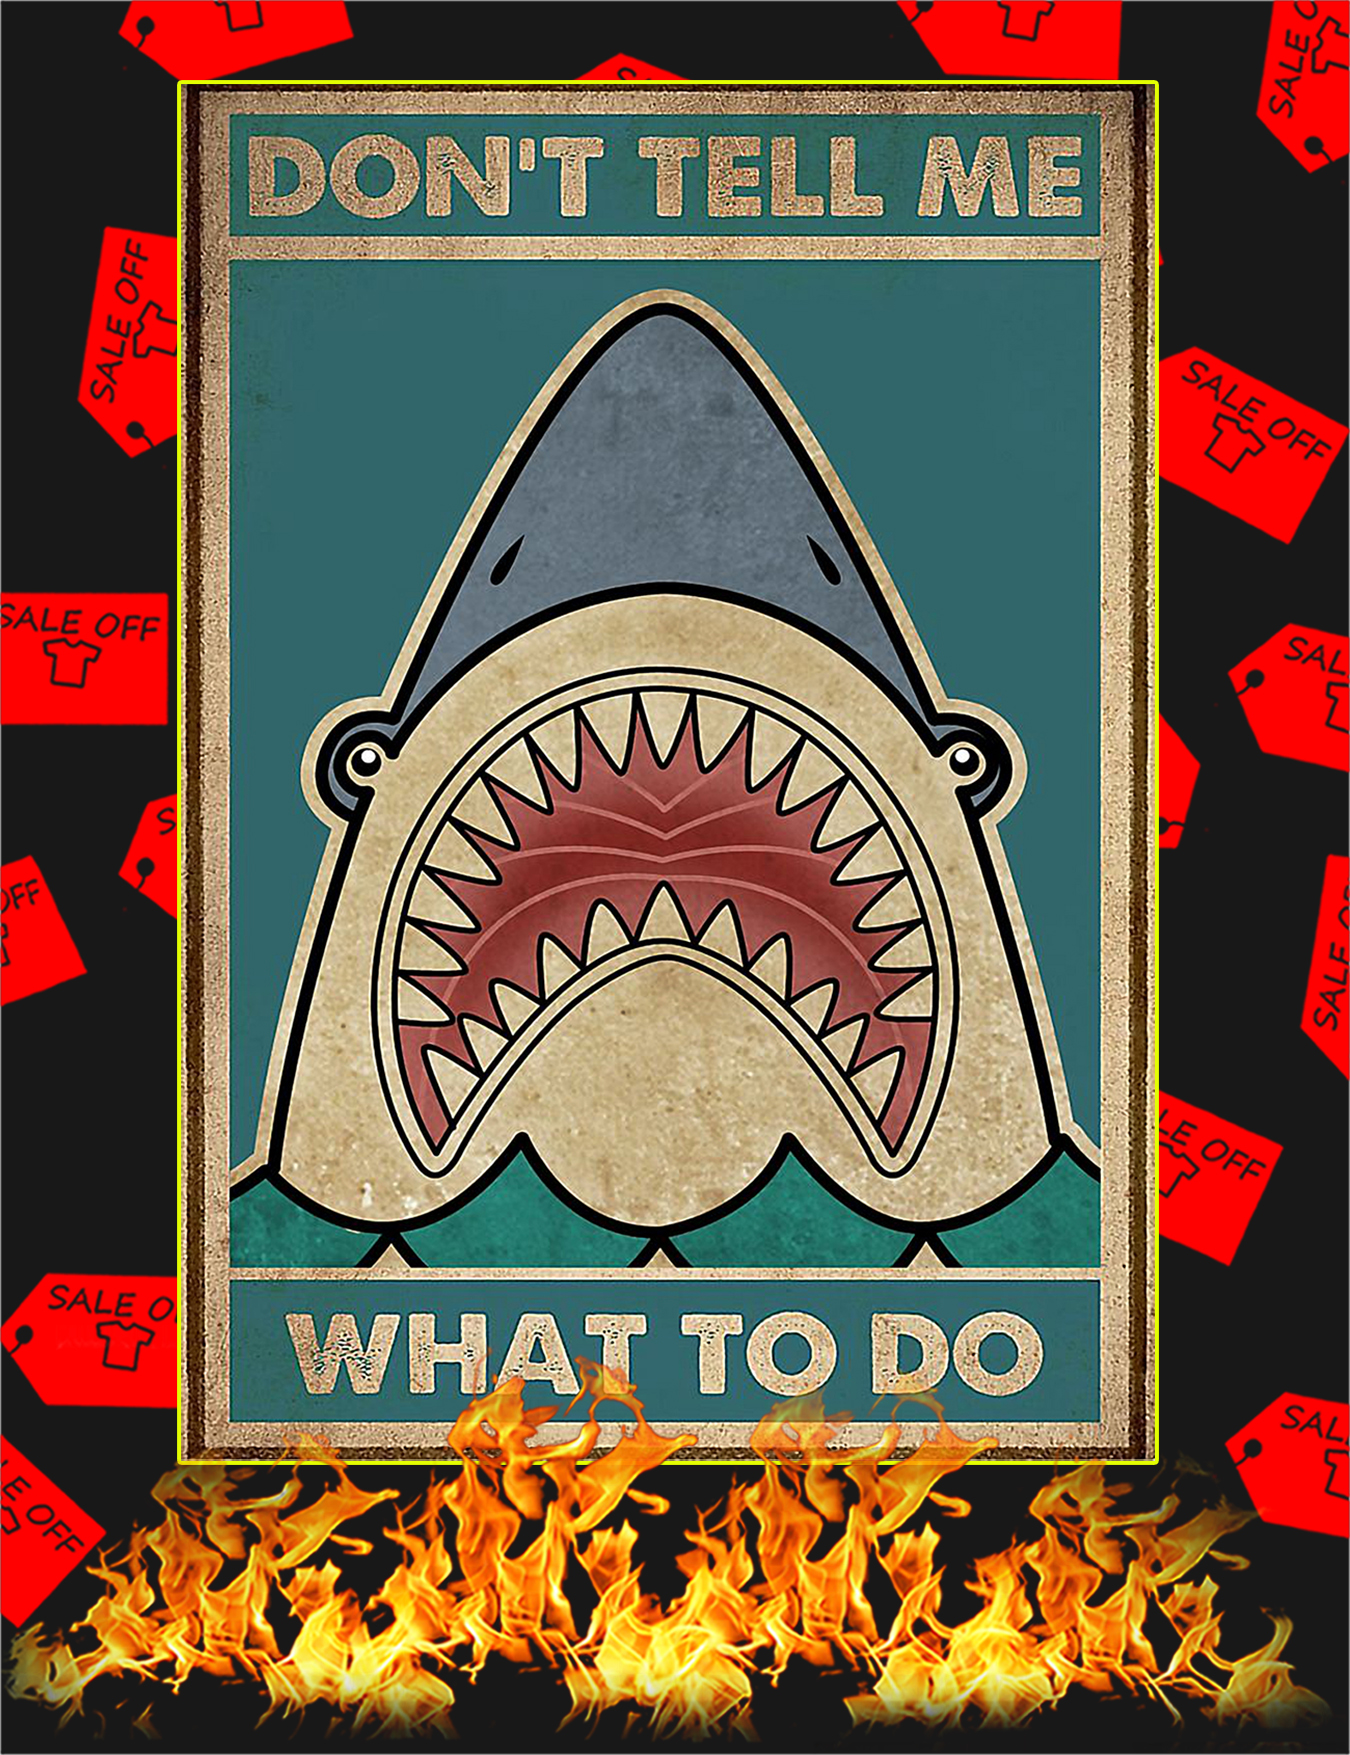 Shark Don't tell me what to do poster - A3